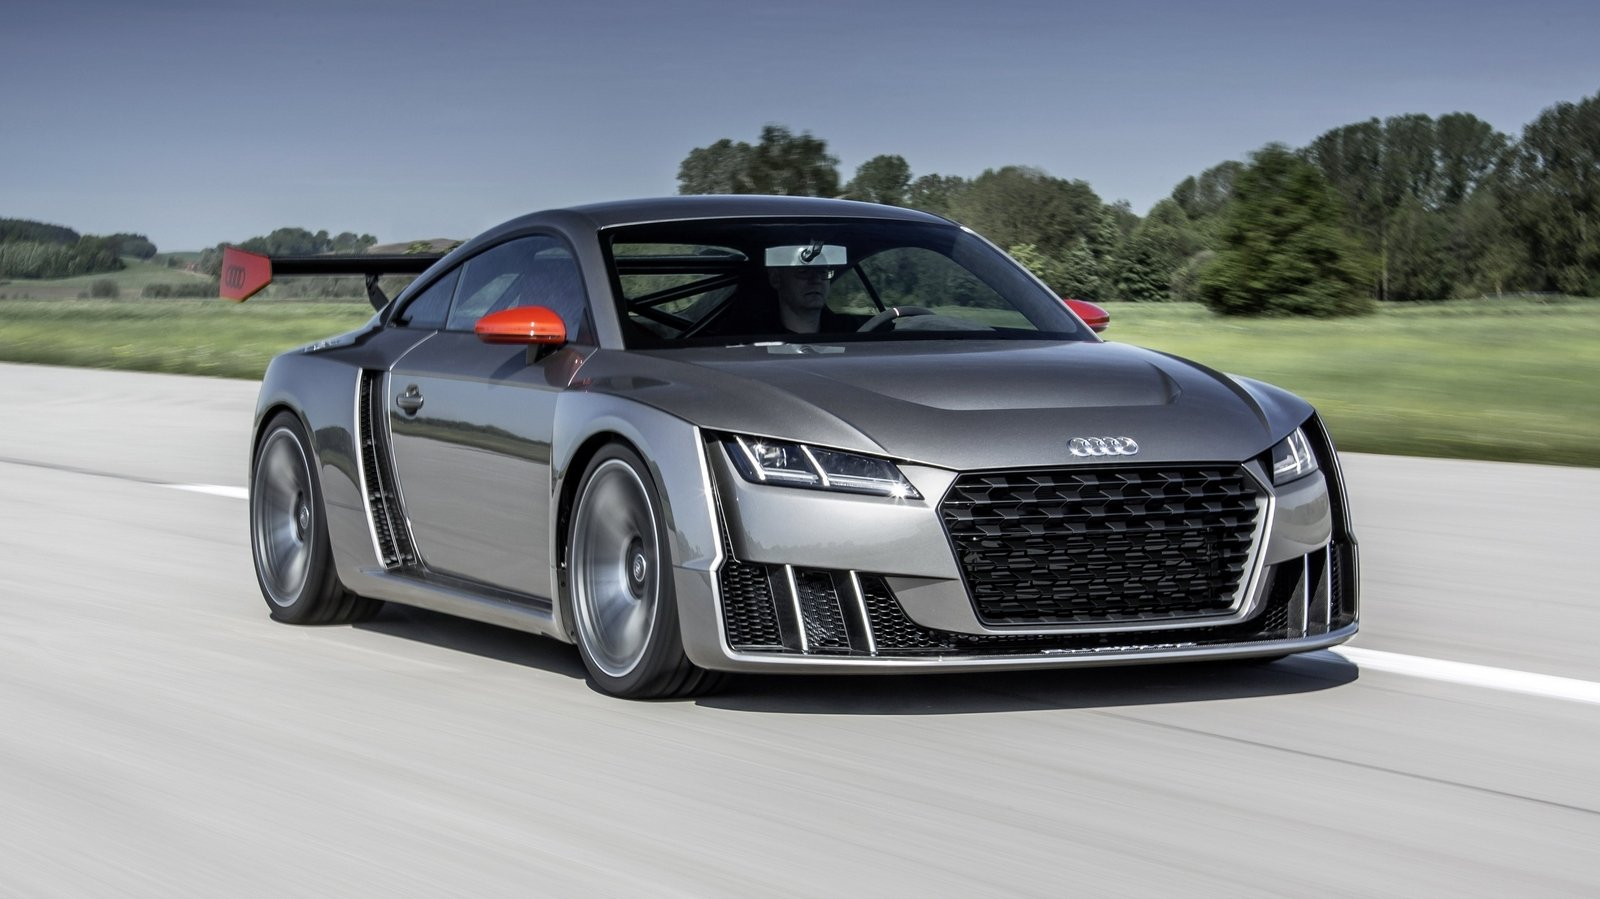 Exotic Car Wallpaper Pack 2015 Audi Tt Clubsport Turbo Technology Concept Picture